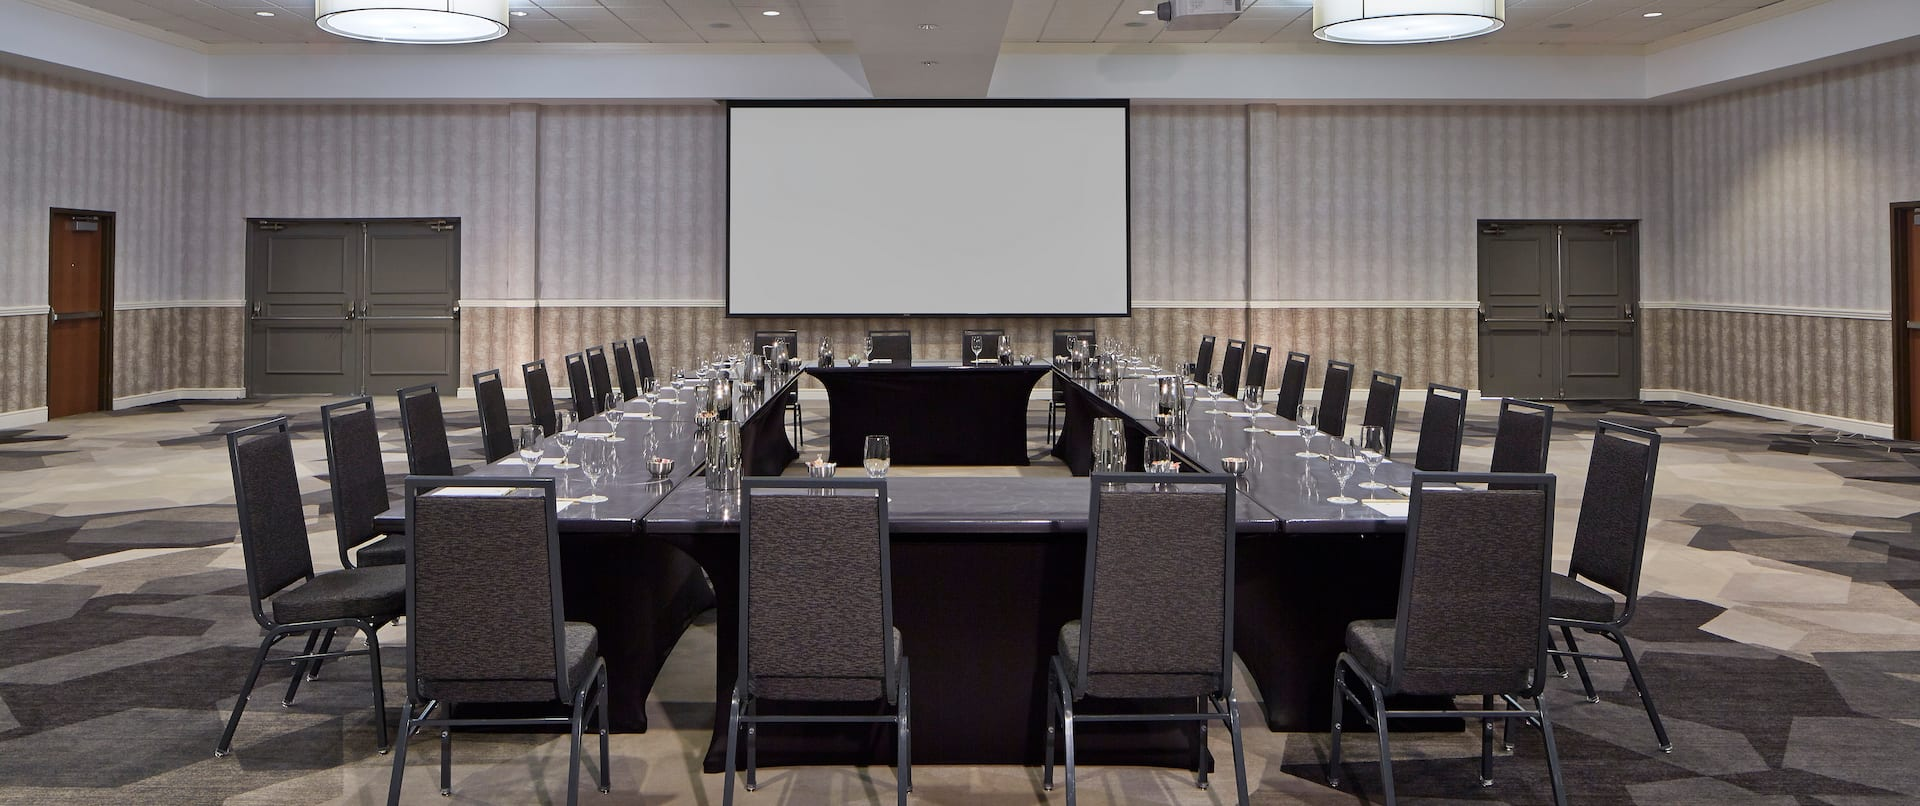 Meeting Room With Projector Above Hollow Square Table With Black Chairs and Projector Screen